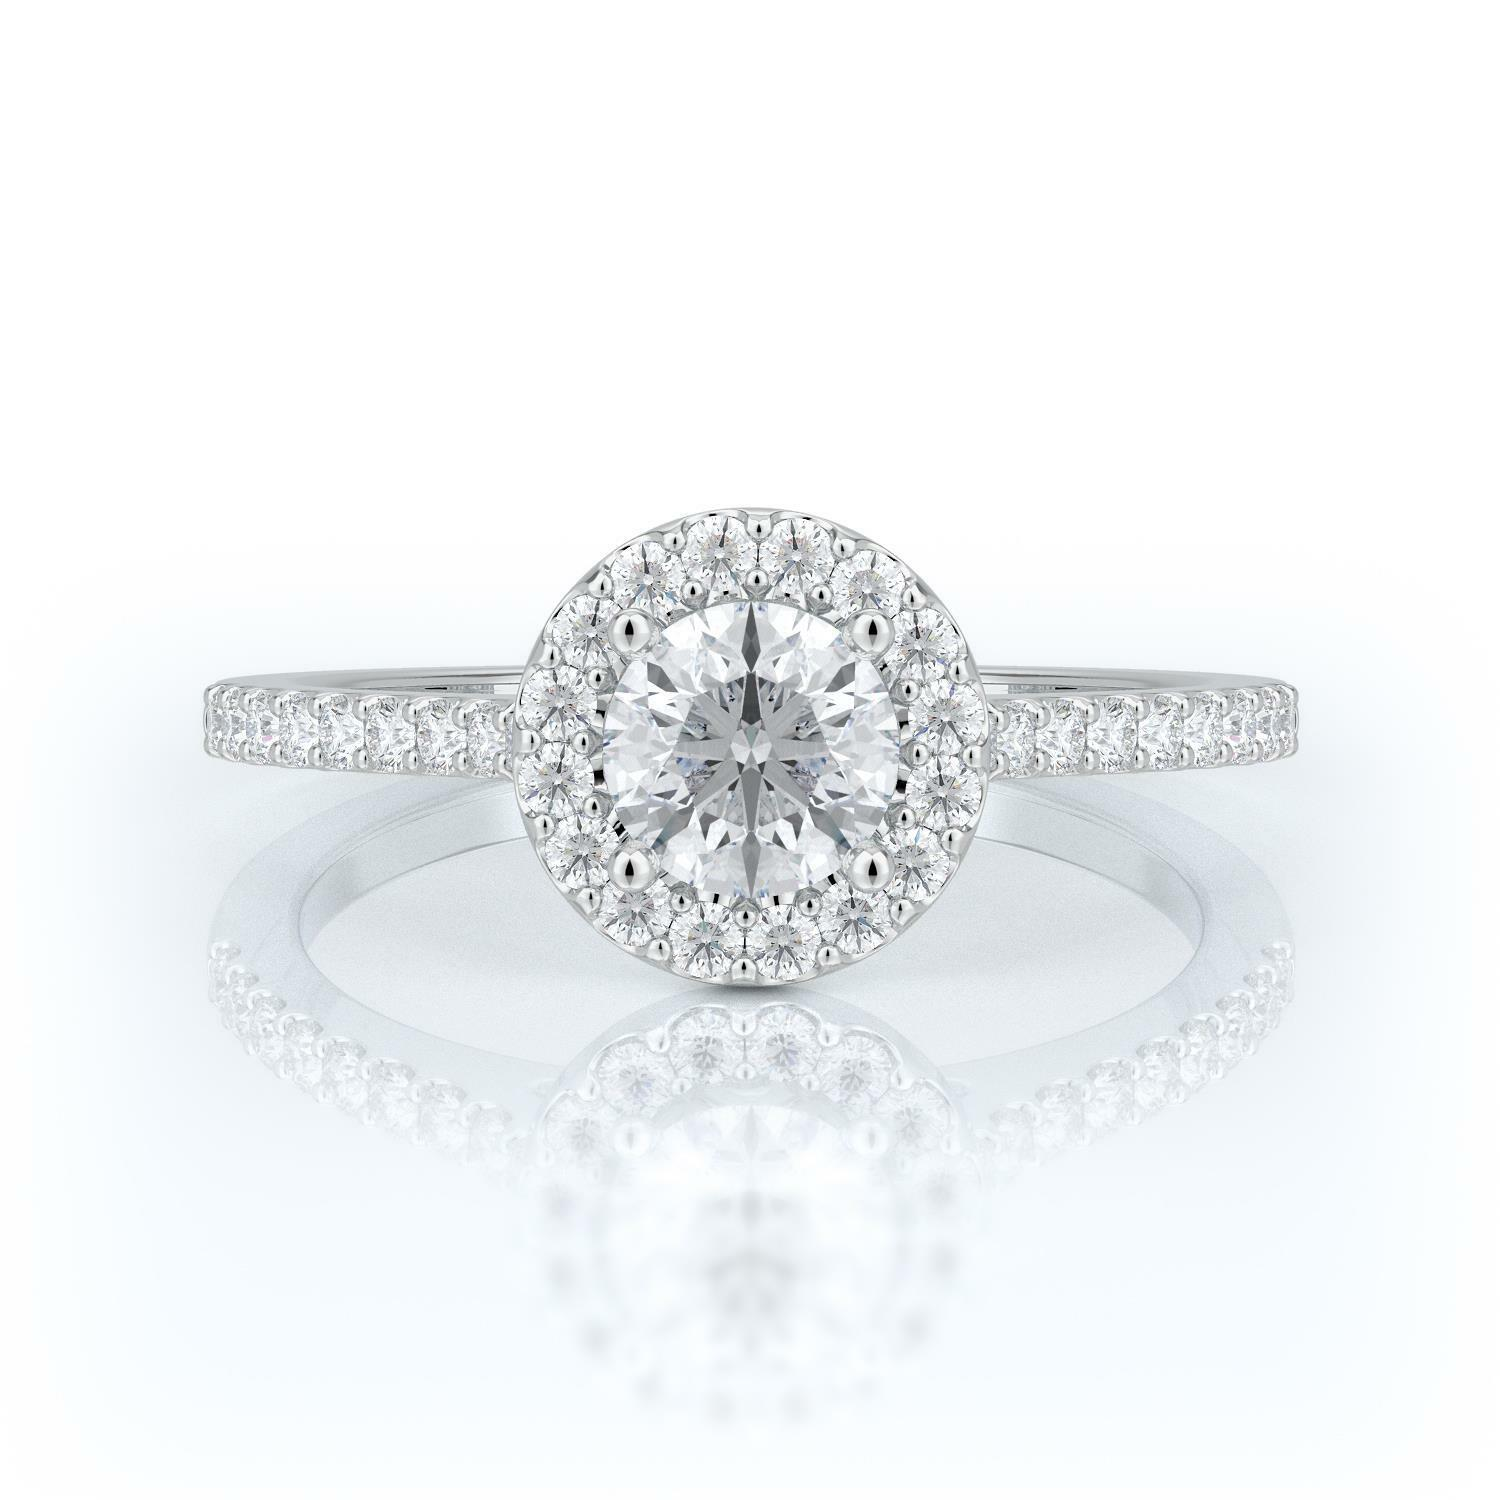 1 1 2 CT ROUND CUT D VS2 HALO DIAMOND SOLITAIRE ENGAGEMENT RING 14K WHITE gold